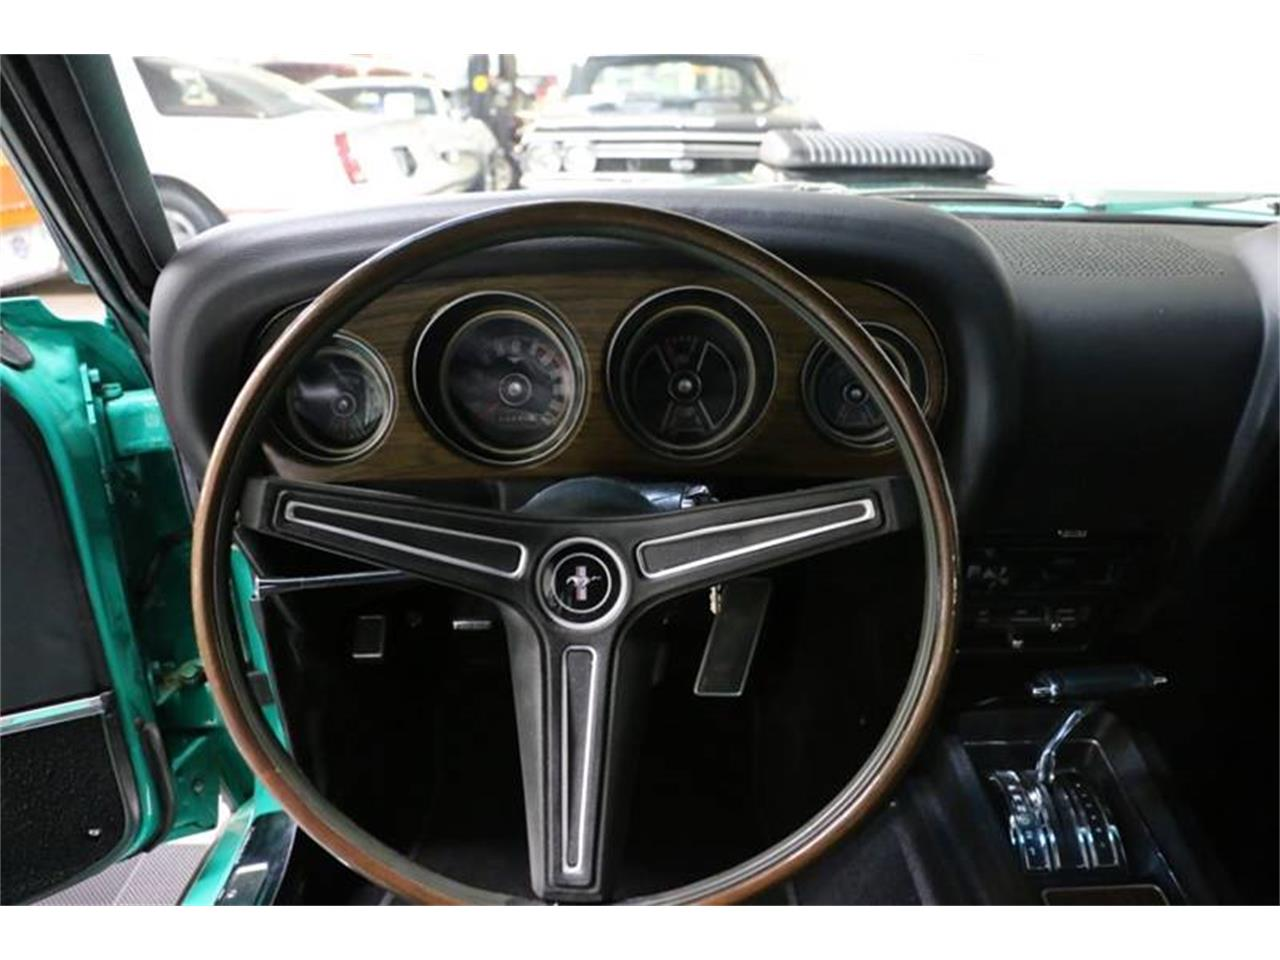 Large Picture of Classic 1970 Ford Mustang located in Stratford Wisconsin - $49,995.00 Offered by Kuyoth's Klassics - Q6NU